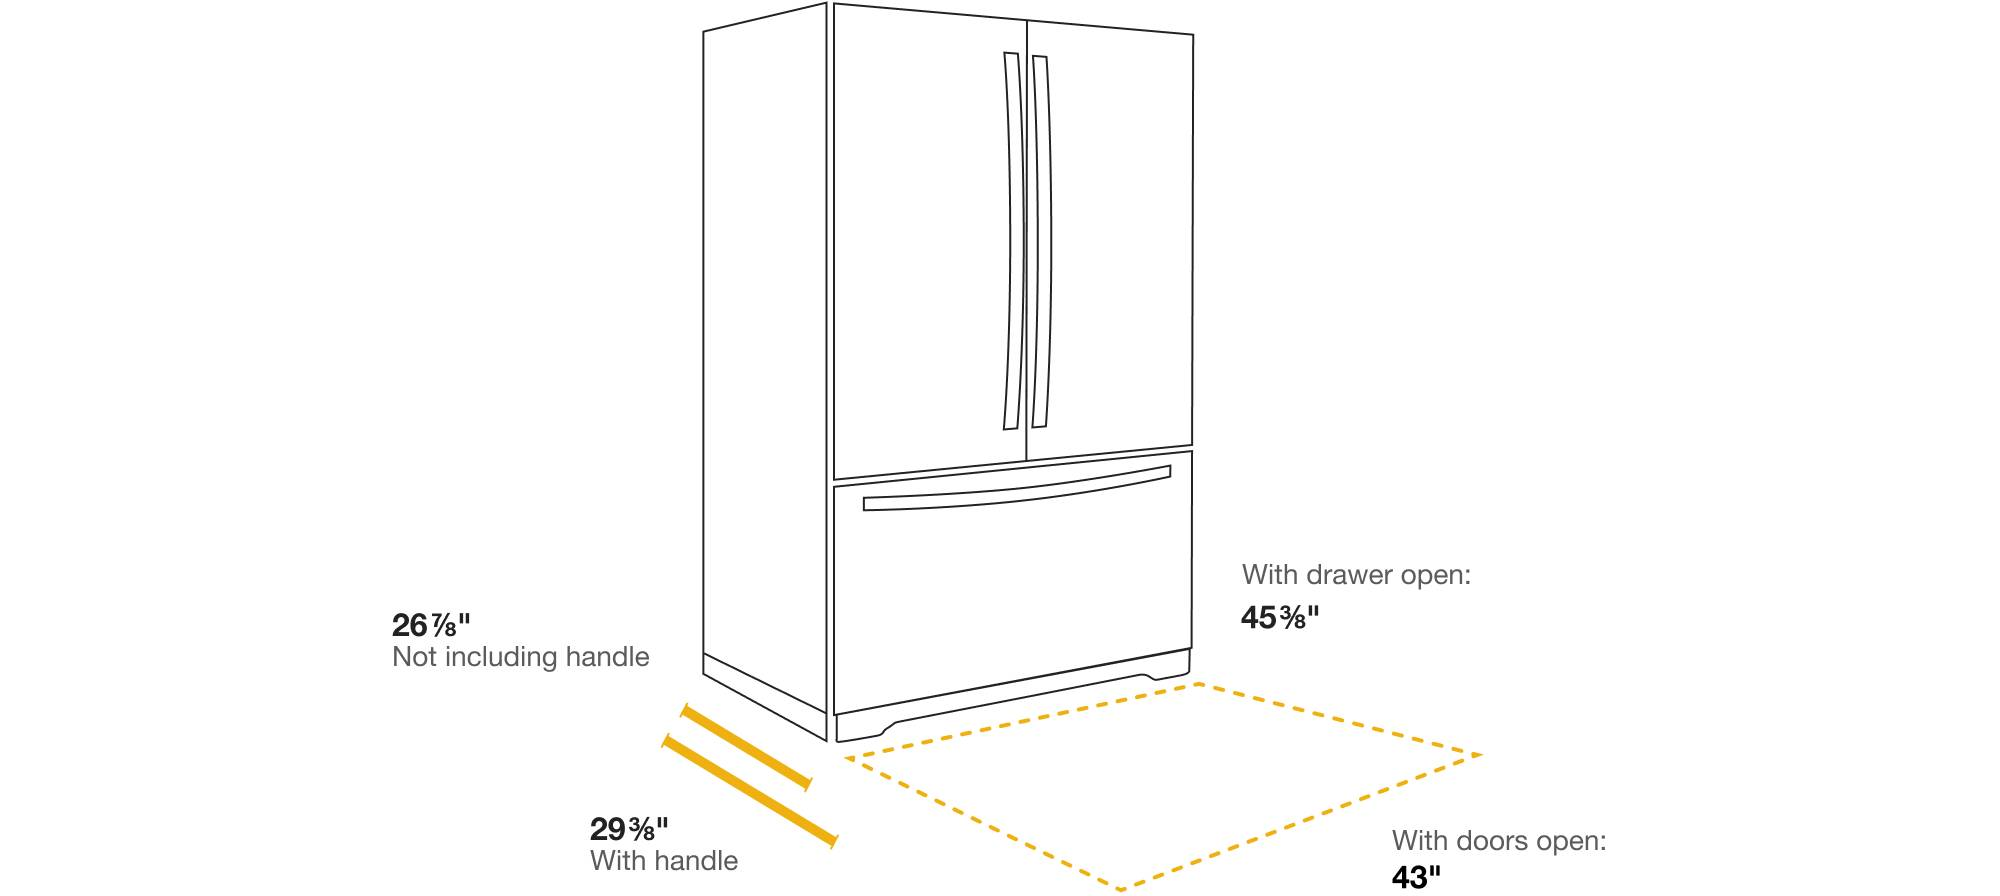 What's the standard refrigerator size? How to find the right refrigerator dimensions for your kitchen's depth.